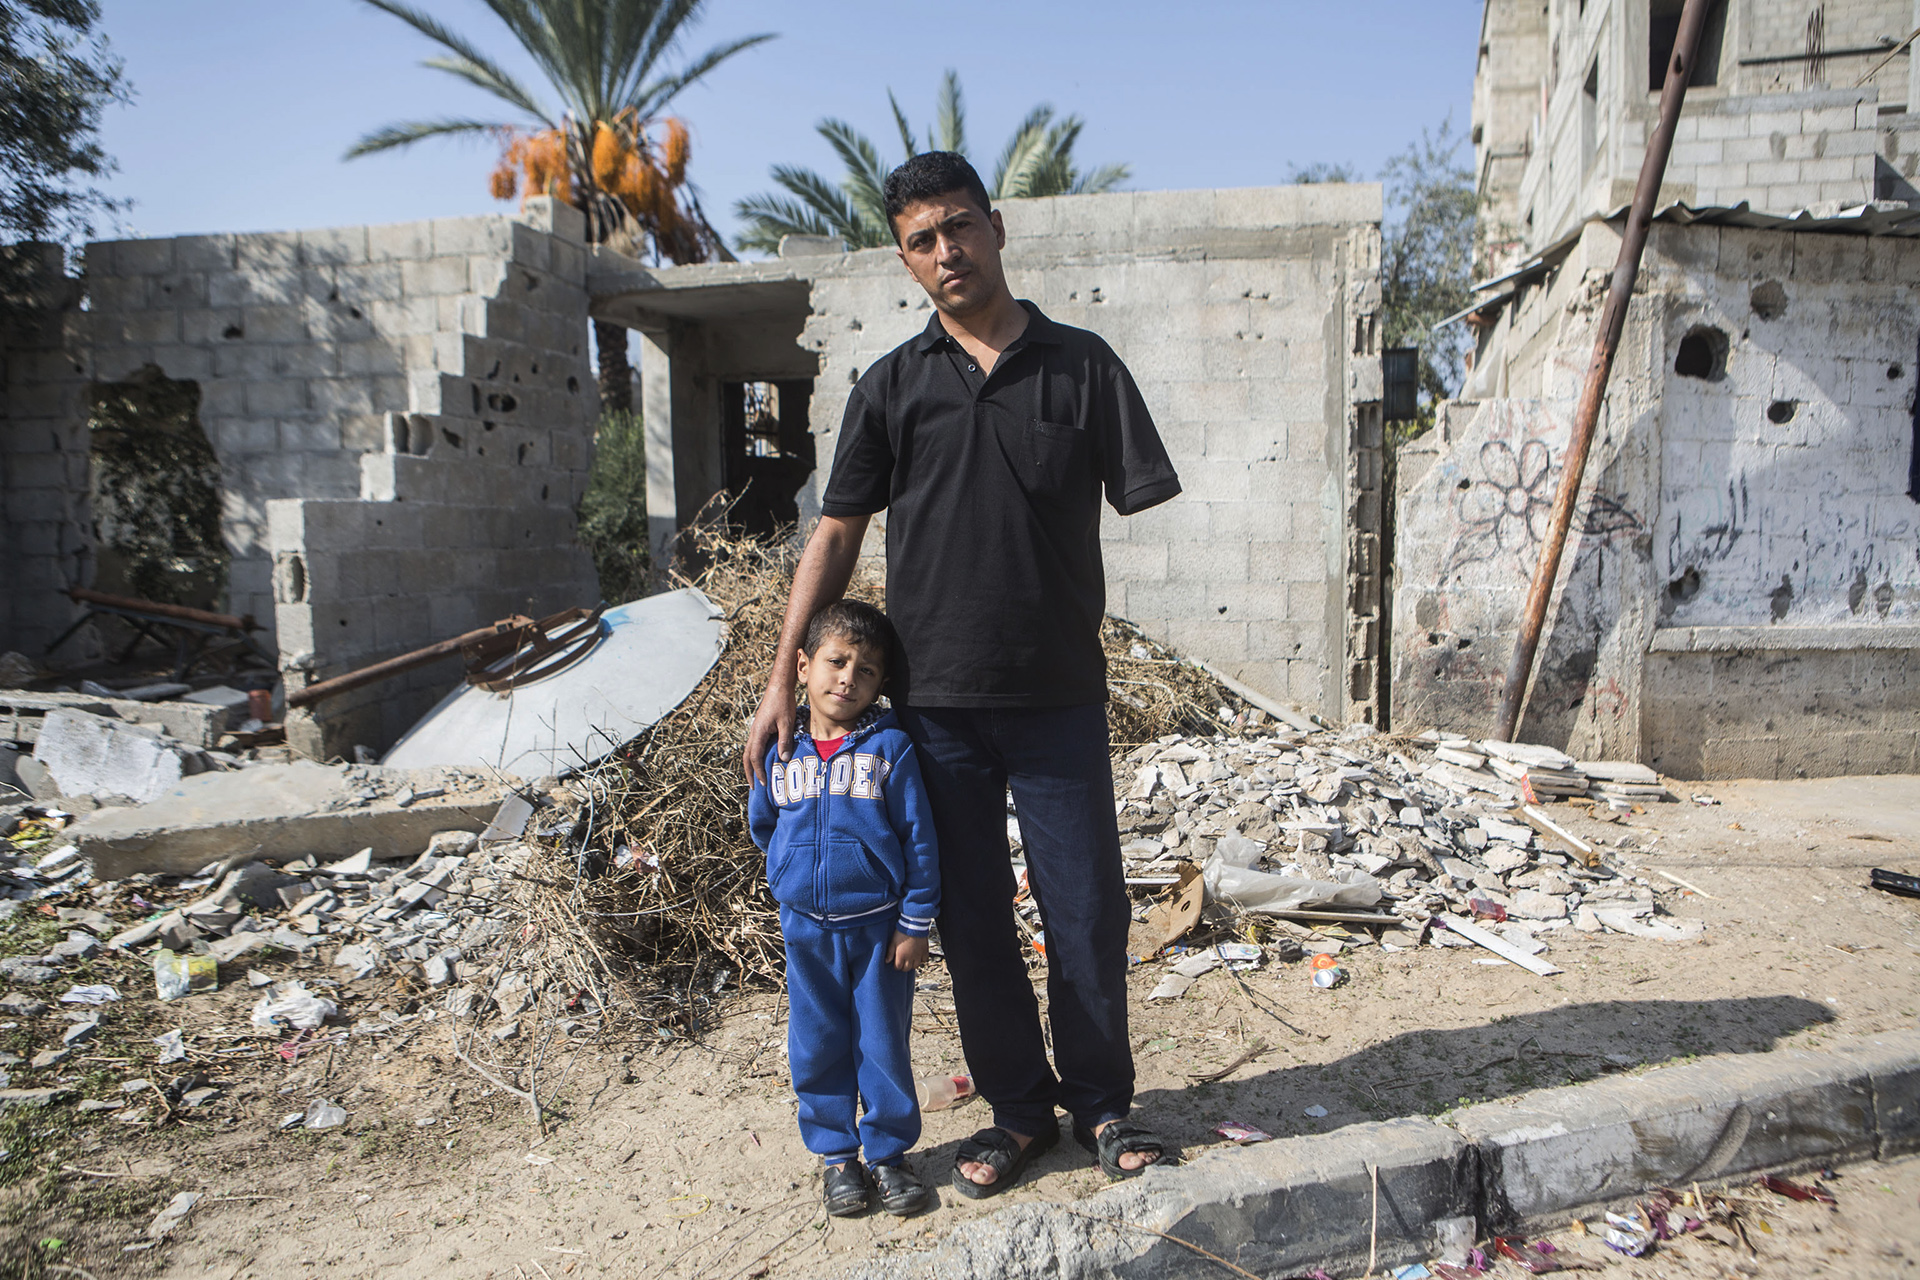 Nabil and his son Baderaddin, standing in the place where the Siyam family was attacked.